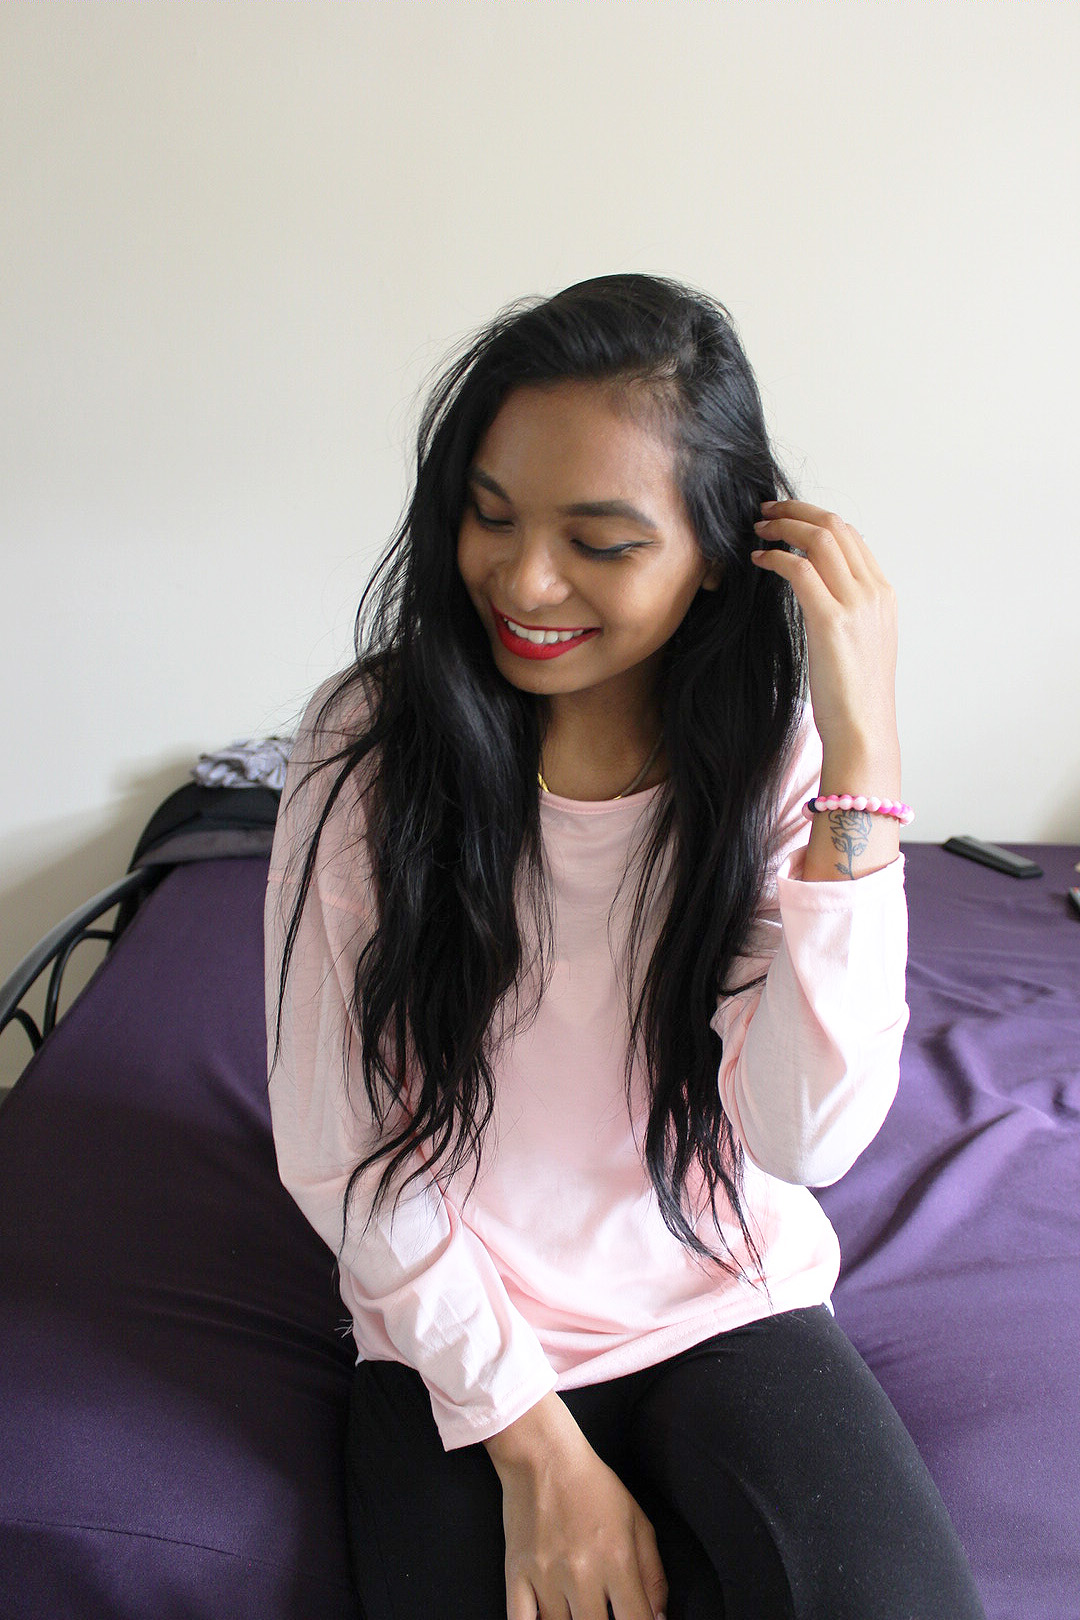 Pink-Sweater-for-Fall-Style-Blogger-Fashionista-LINDATENCHITRAN-1-1616x1080